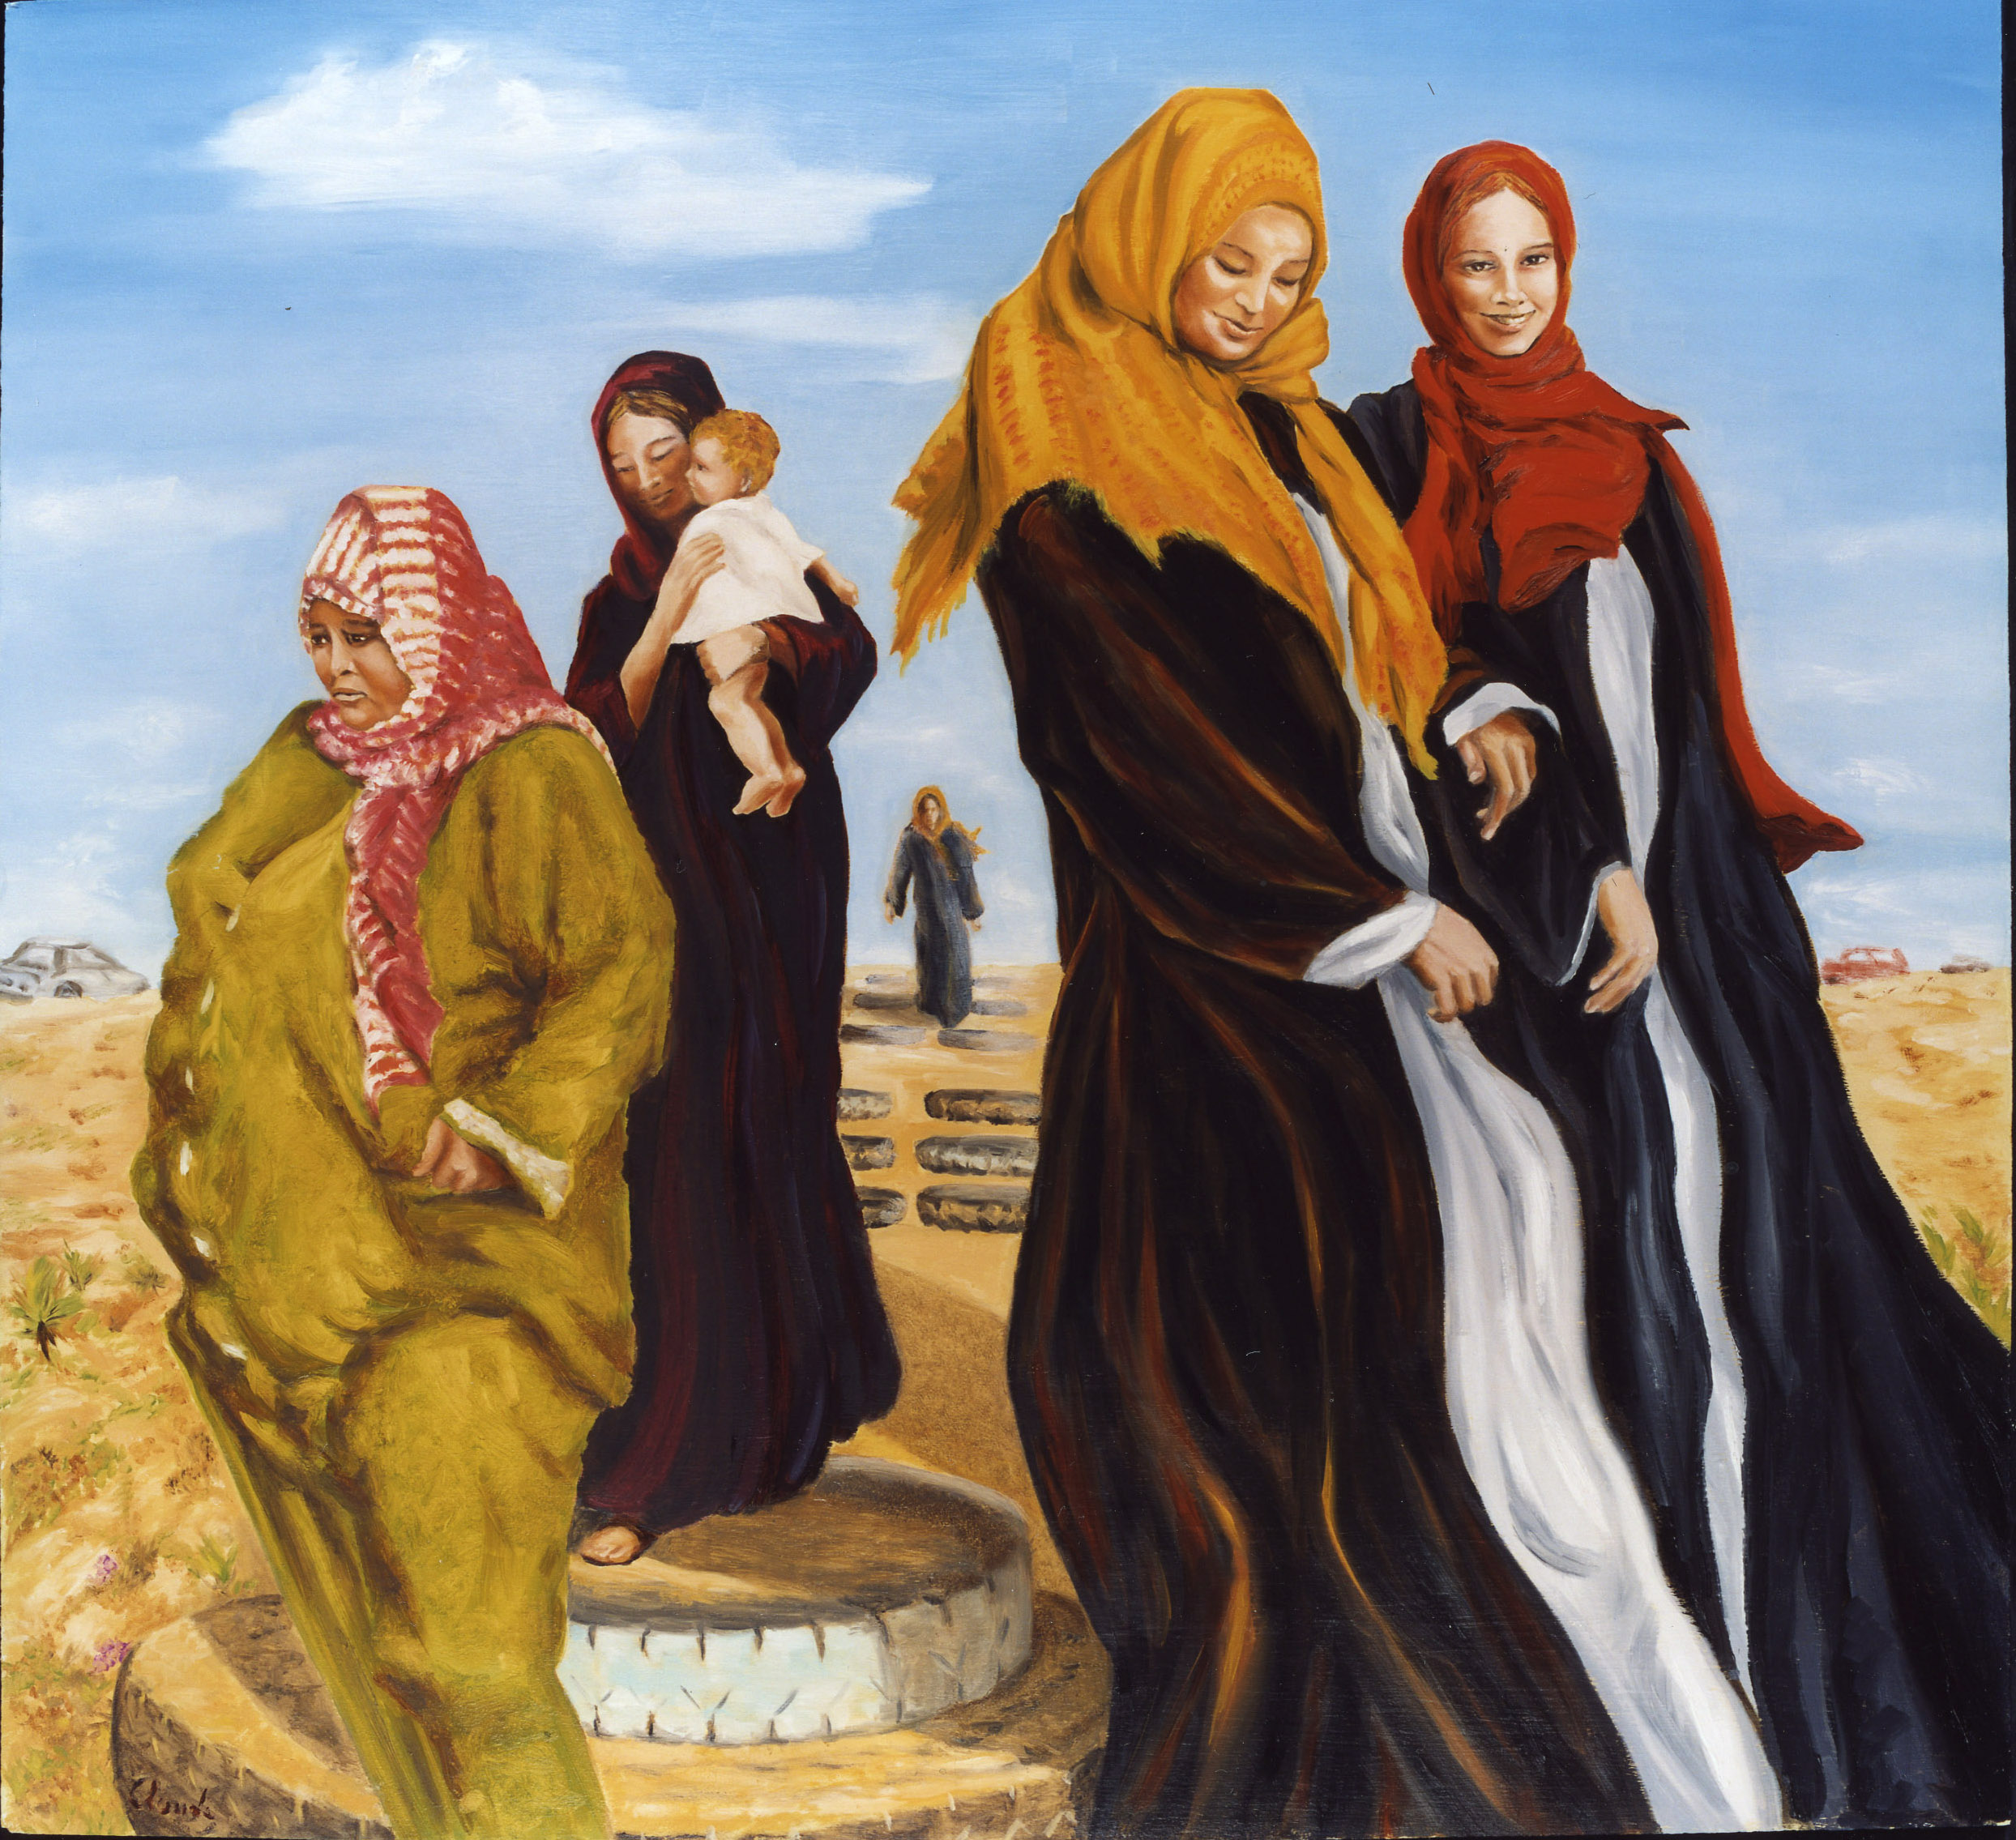 Palestine women going to the beach 2003